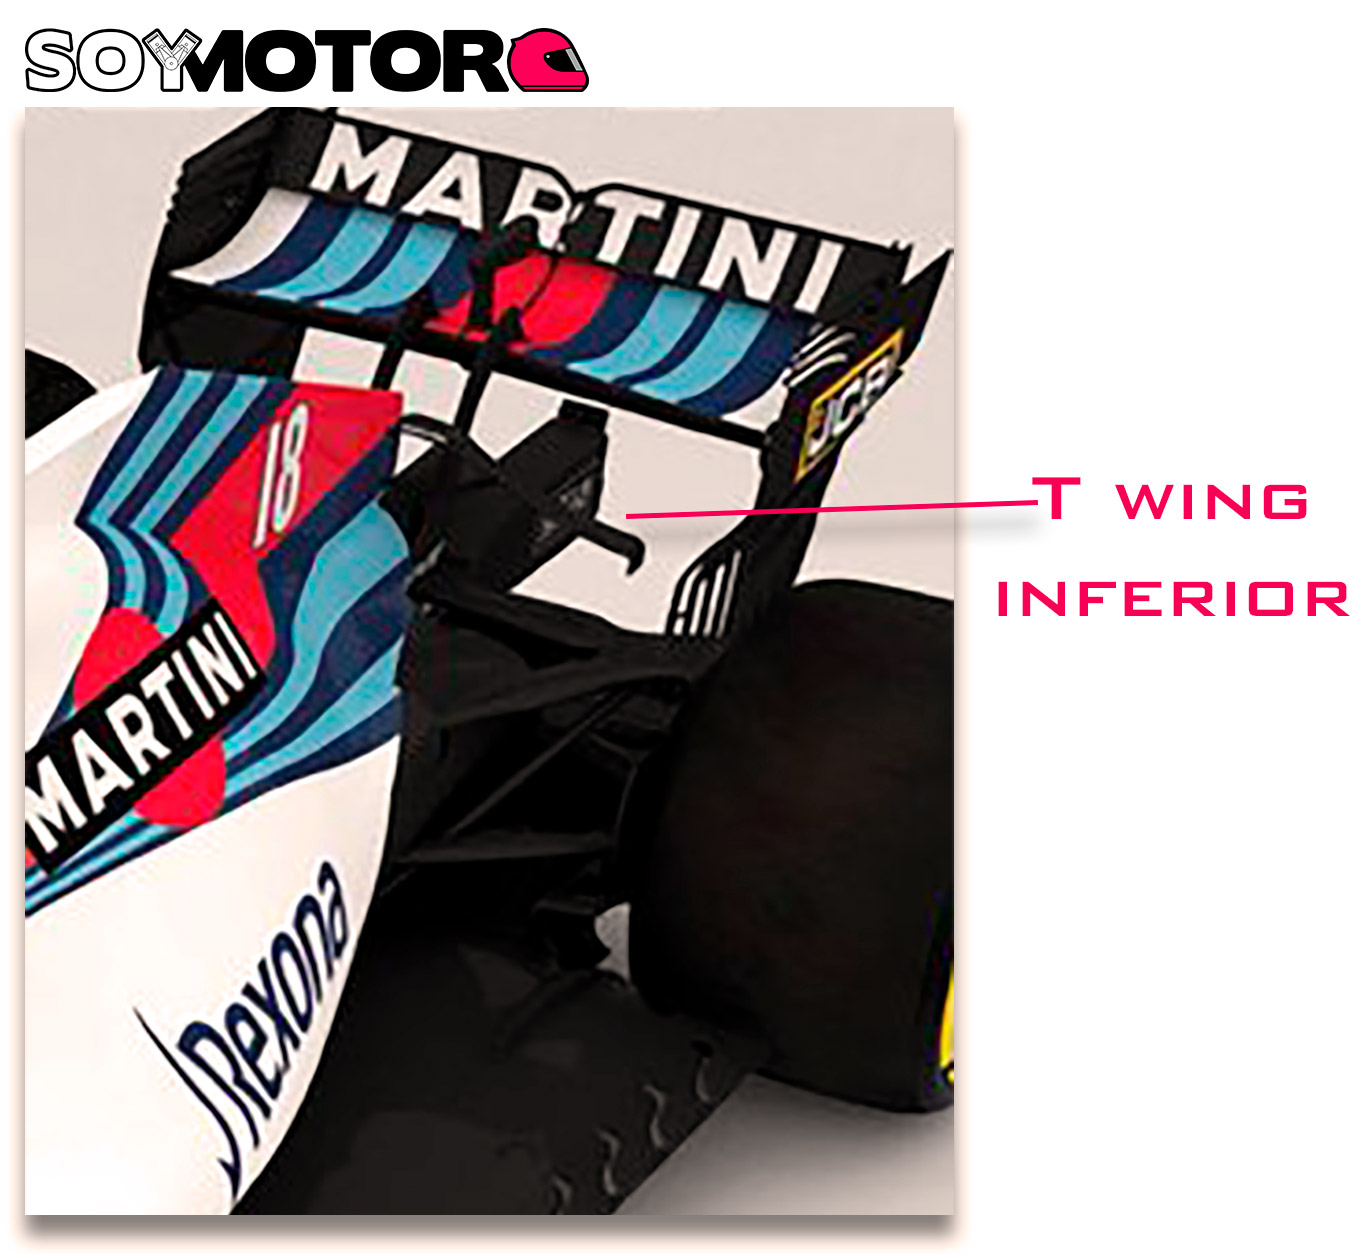 williams-t-wing-inferior.jpg